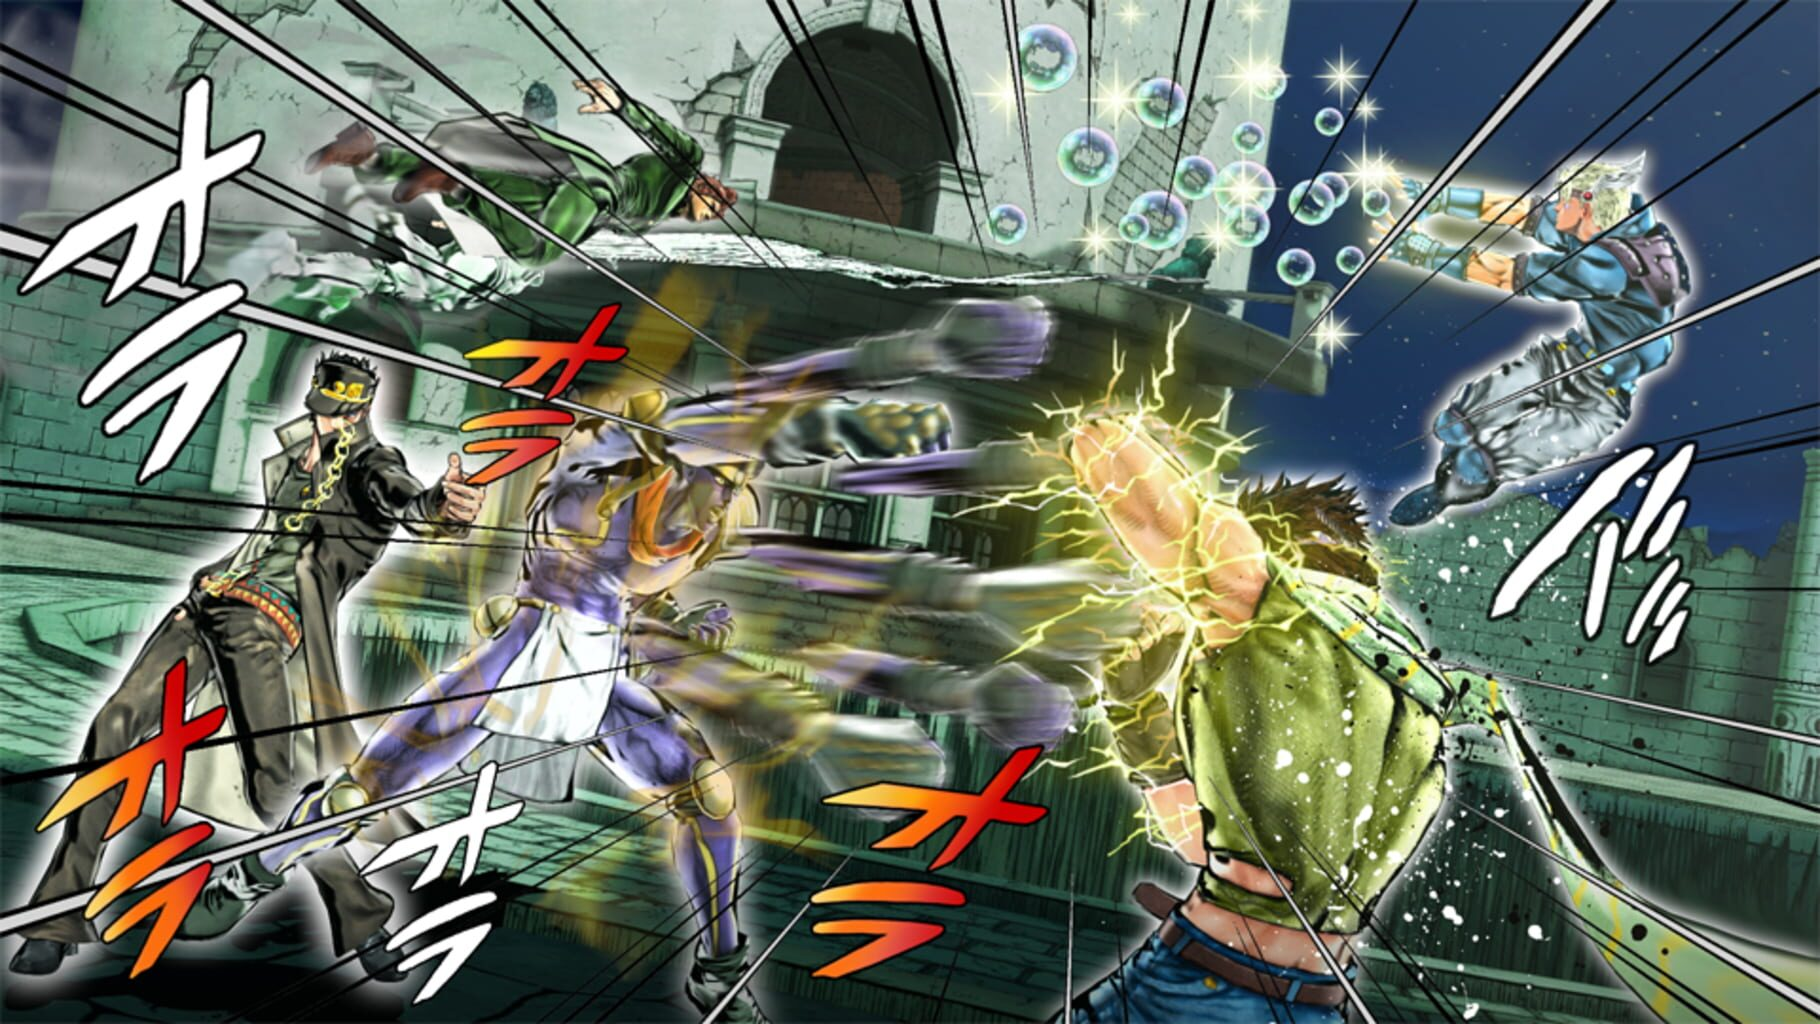 Gameplay Screenshot from JoJo's Bizarre Adventure: Eyes of Heaven